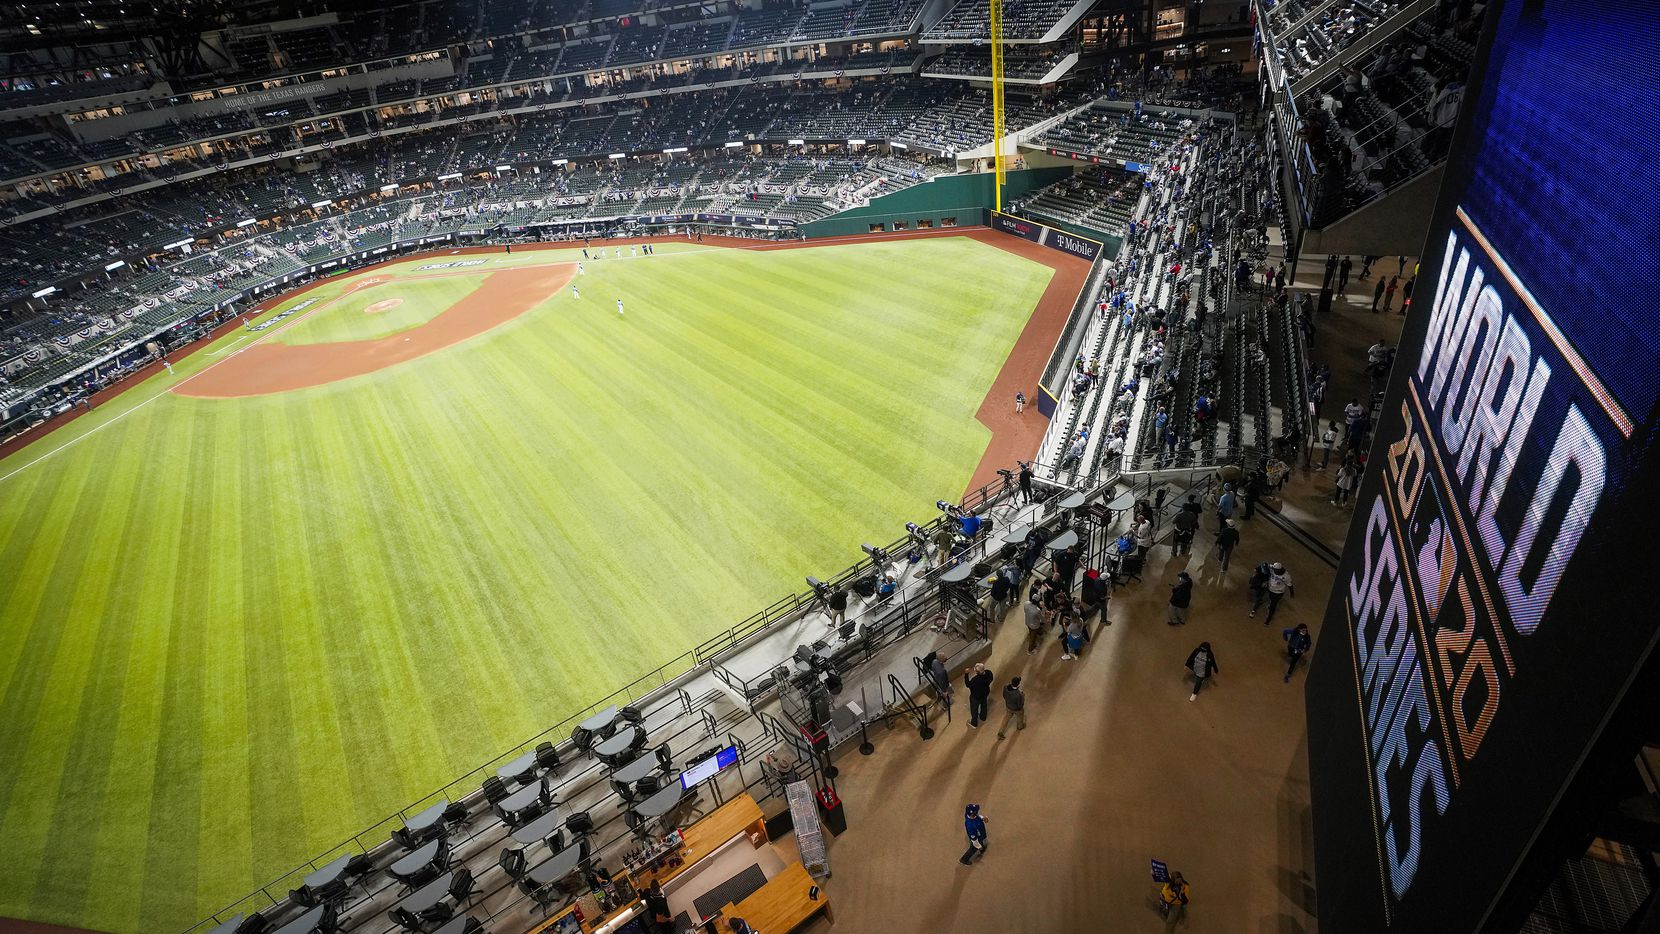 The Tampa Bay Rays take the field to face the Los Angeles Dodgers before Game 5 of the World Series between the Los Angeles Dodgers and the Tampa Bay Rays at Globe Life Field on Sunday, Oct. 25, 2020.